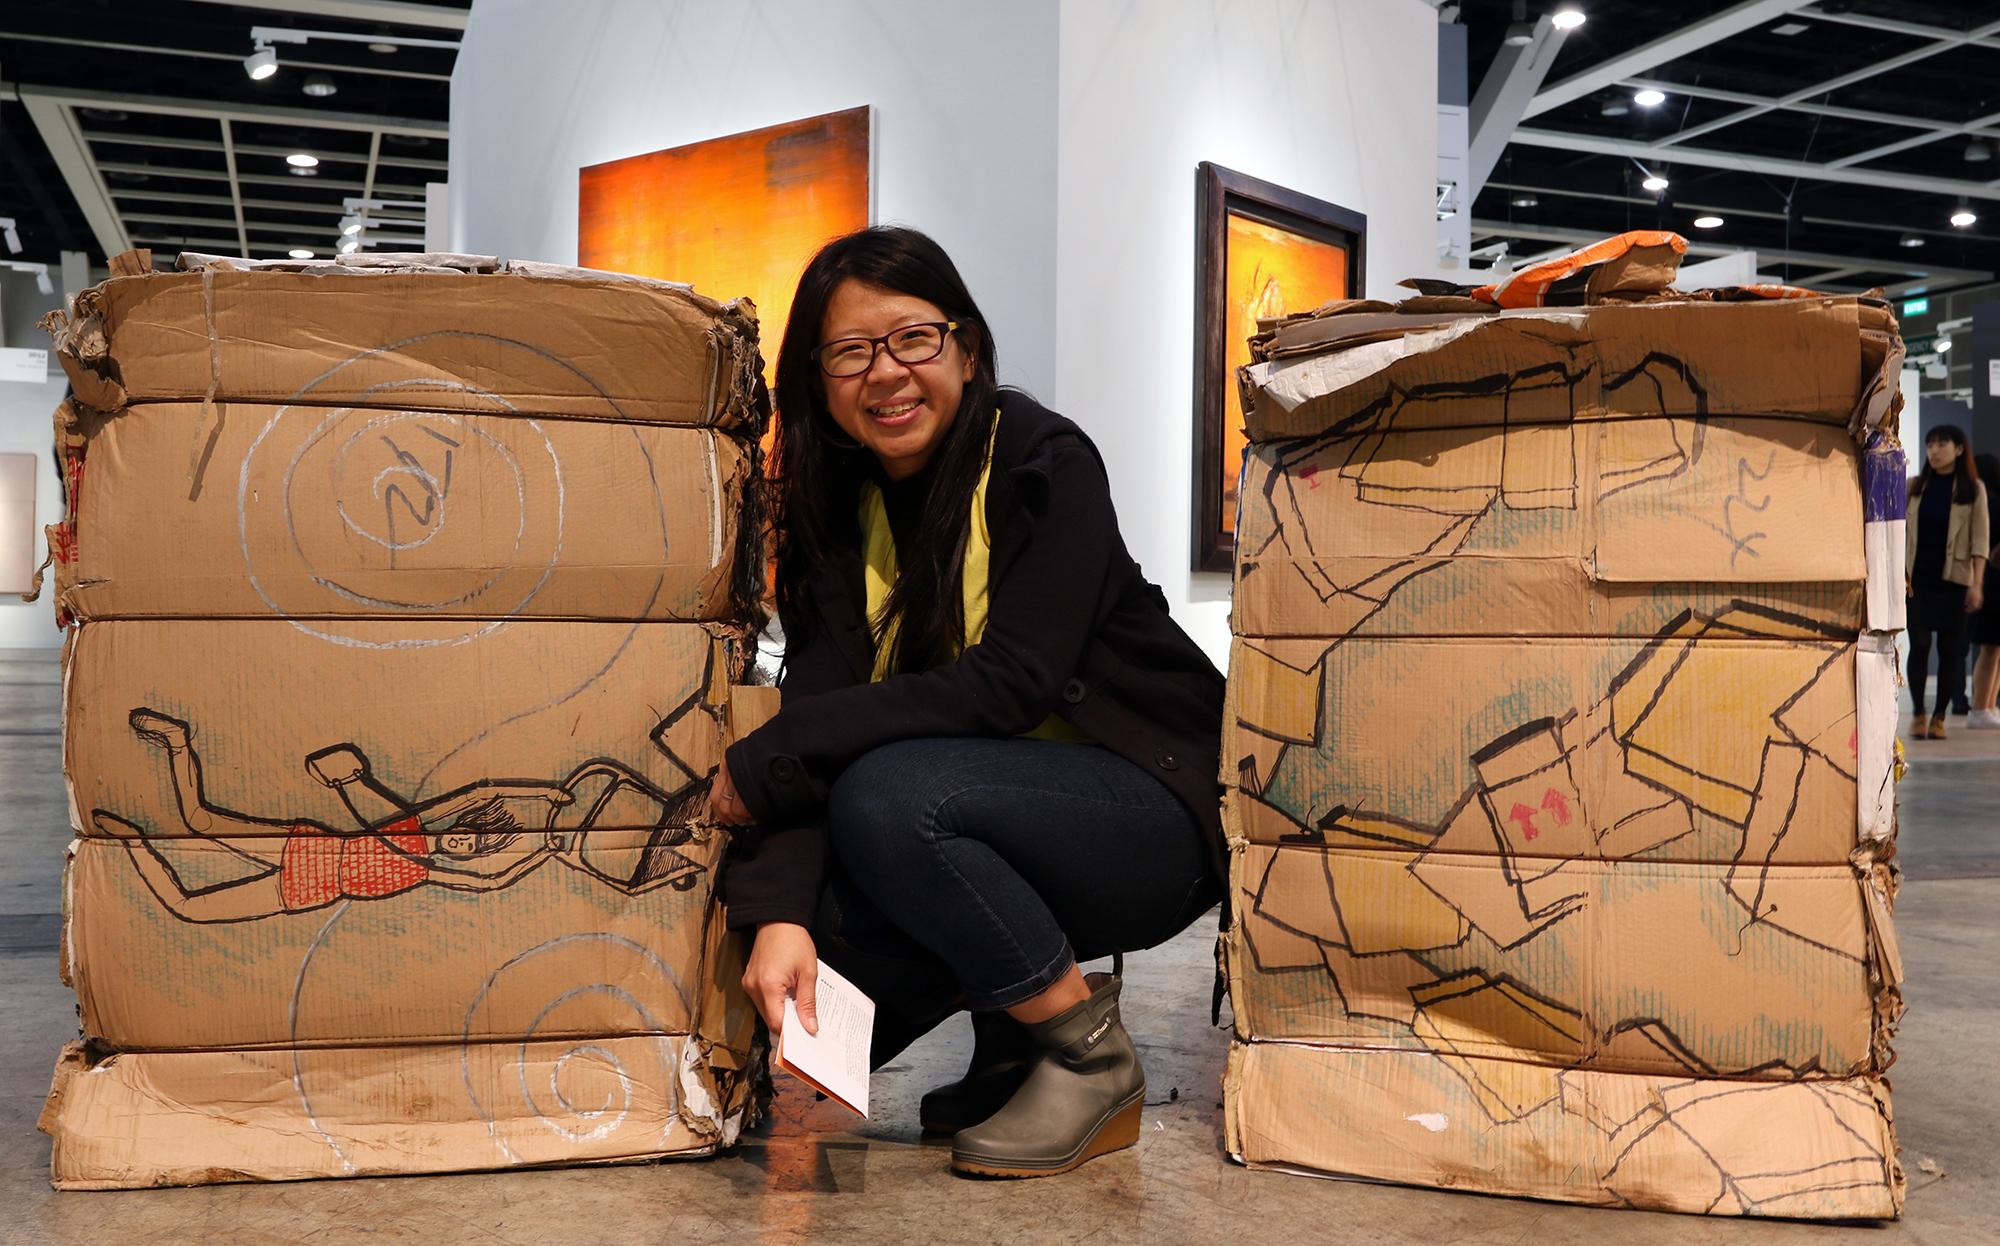 Tintin Wulia poses with Five Tonnes of Homes and Other Understories. Photo: Evangeline SM Lam